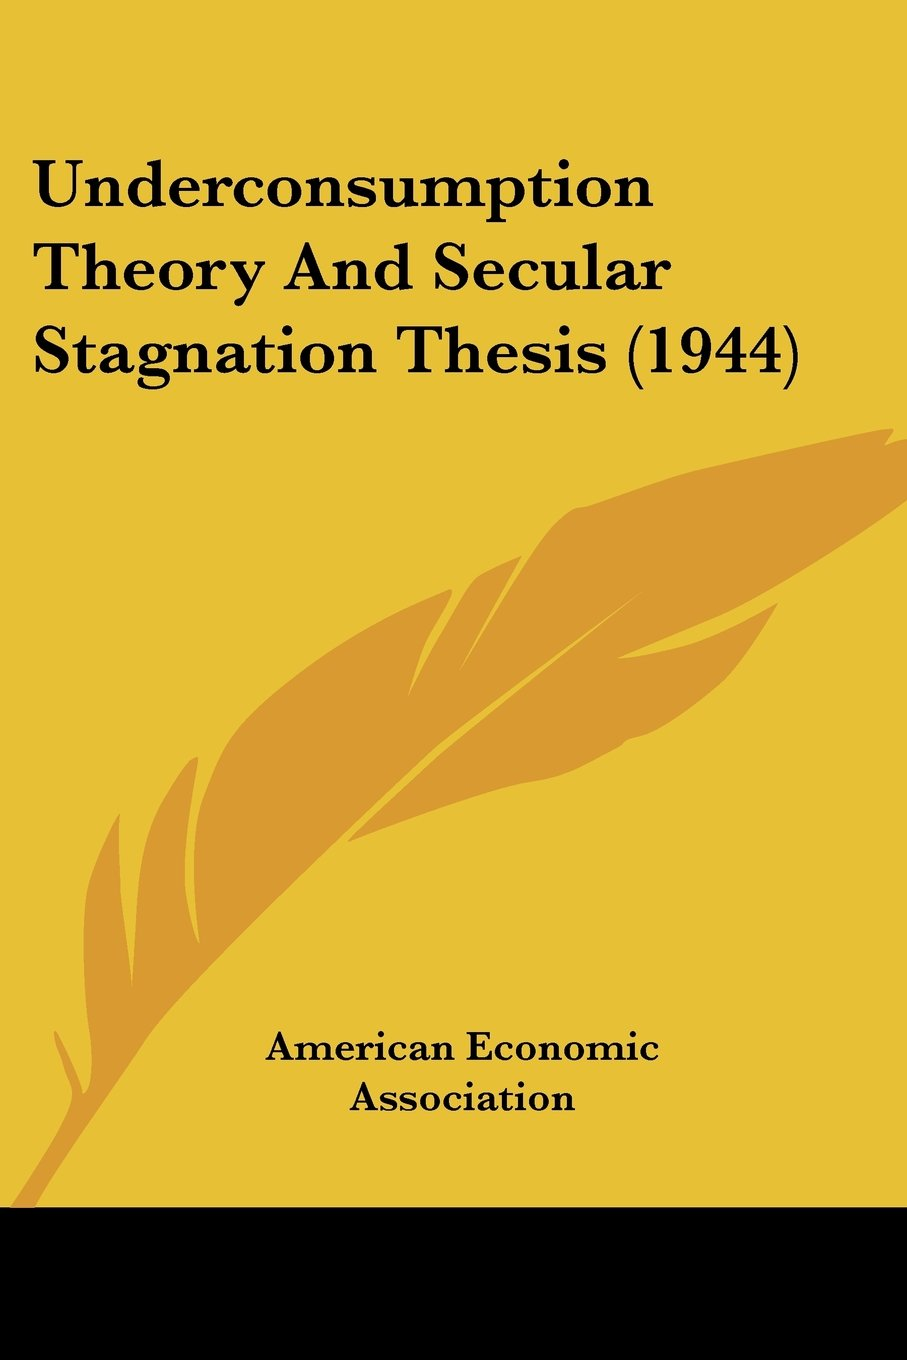 Underconsumption Theory And Secular Stagnation Thesis (1944) PDF